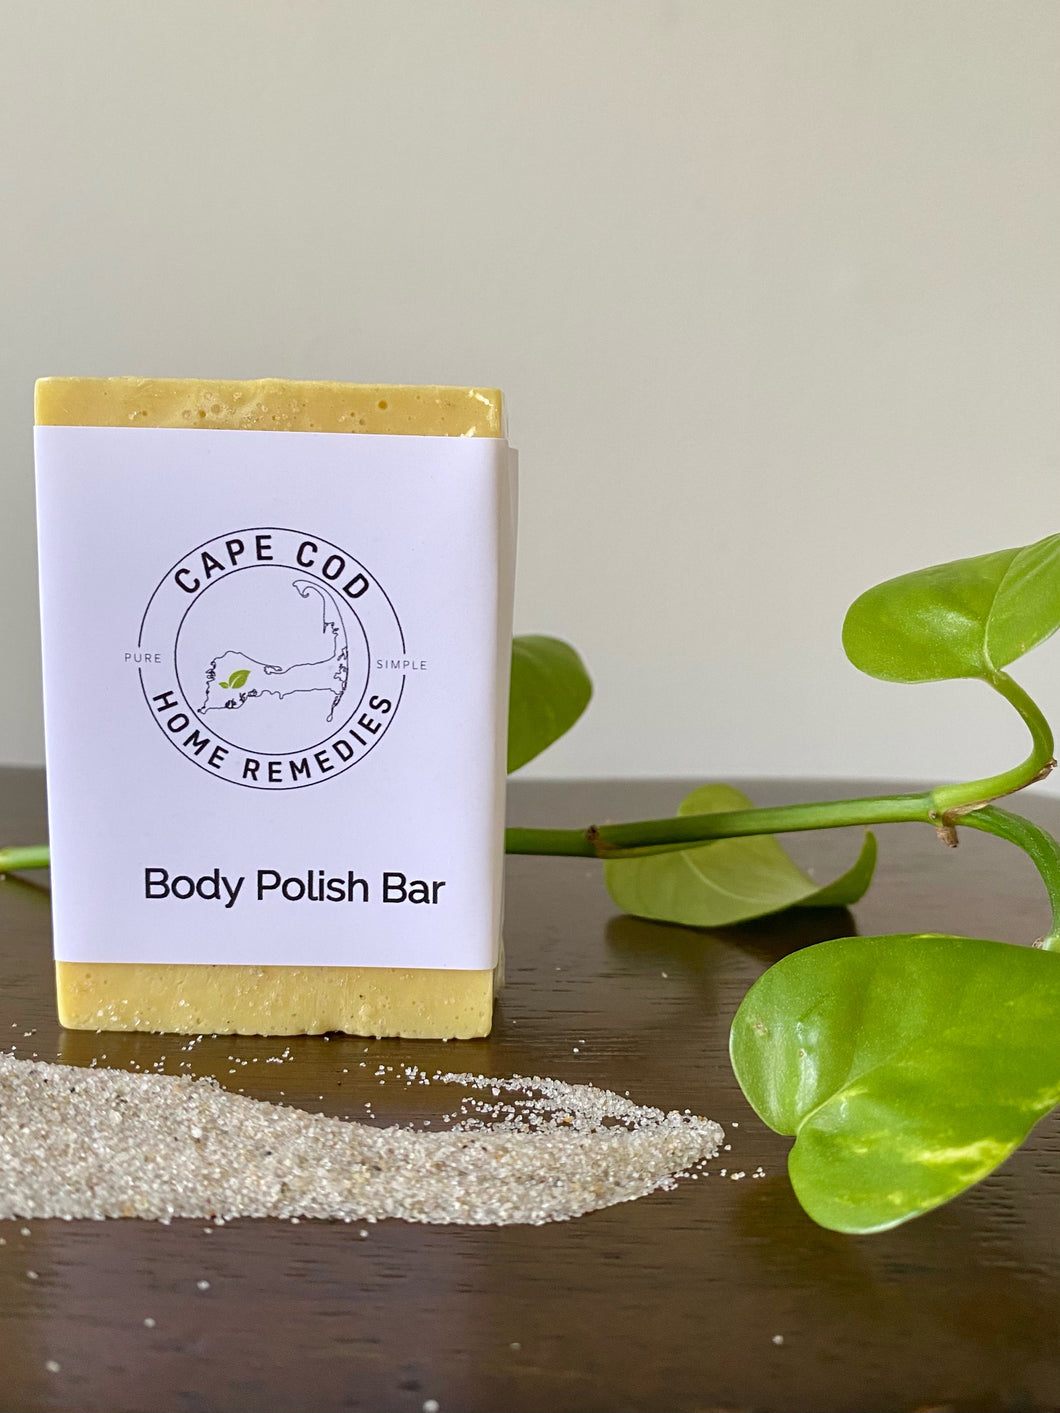 Body Polish Bar